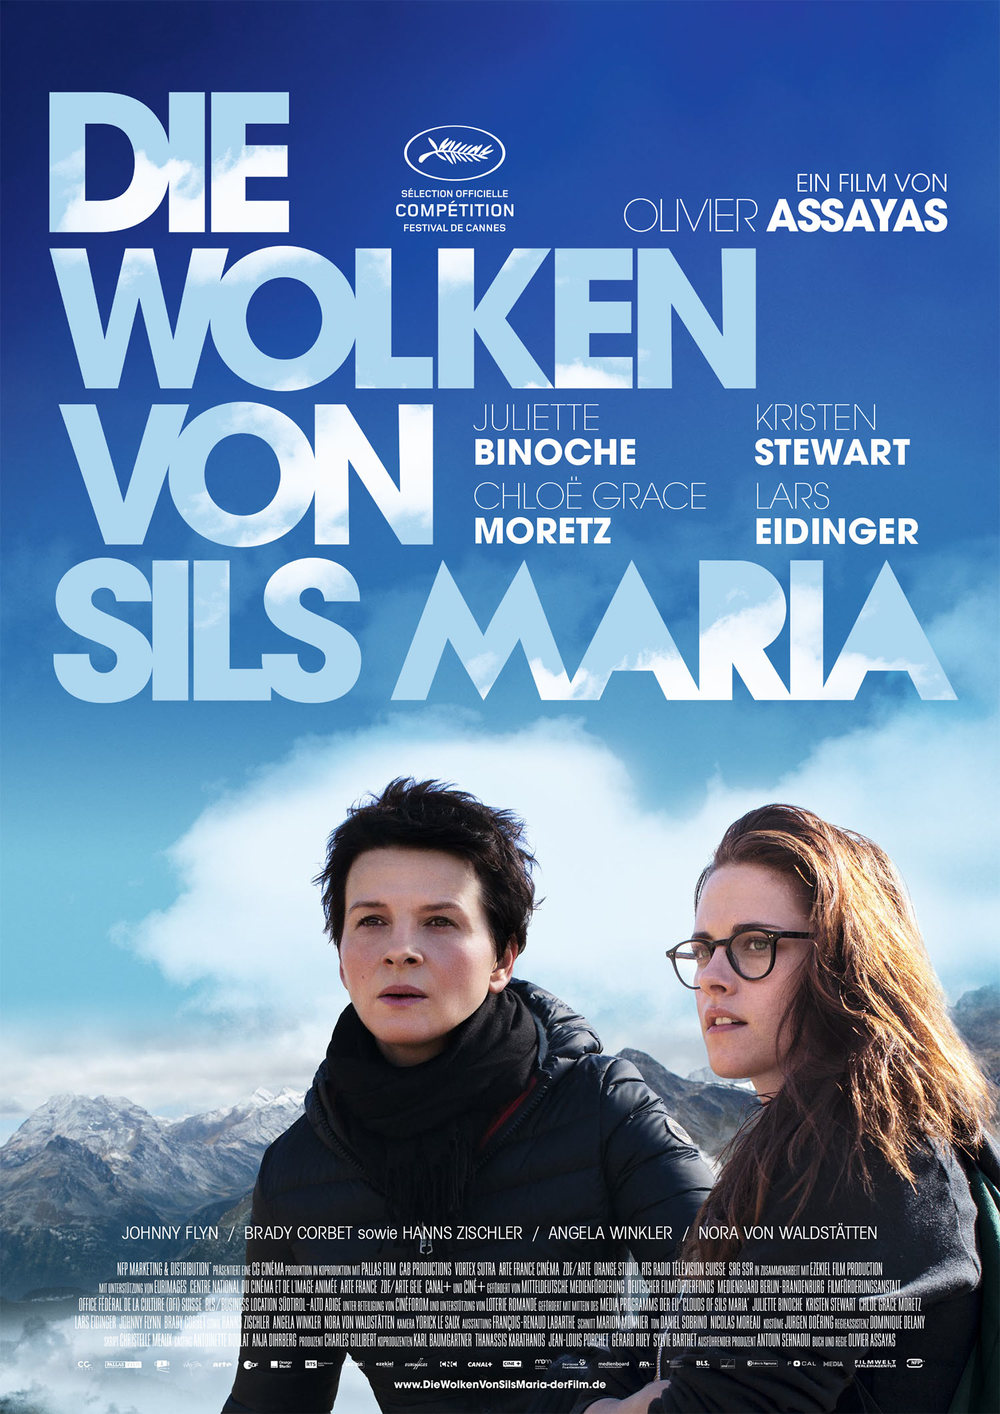 "NPP*<a href=""/die-wolken-von-sils-maria"">→</a><strong>Adaption</strong>"